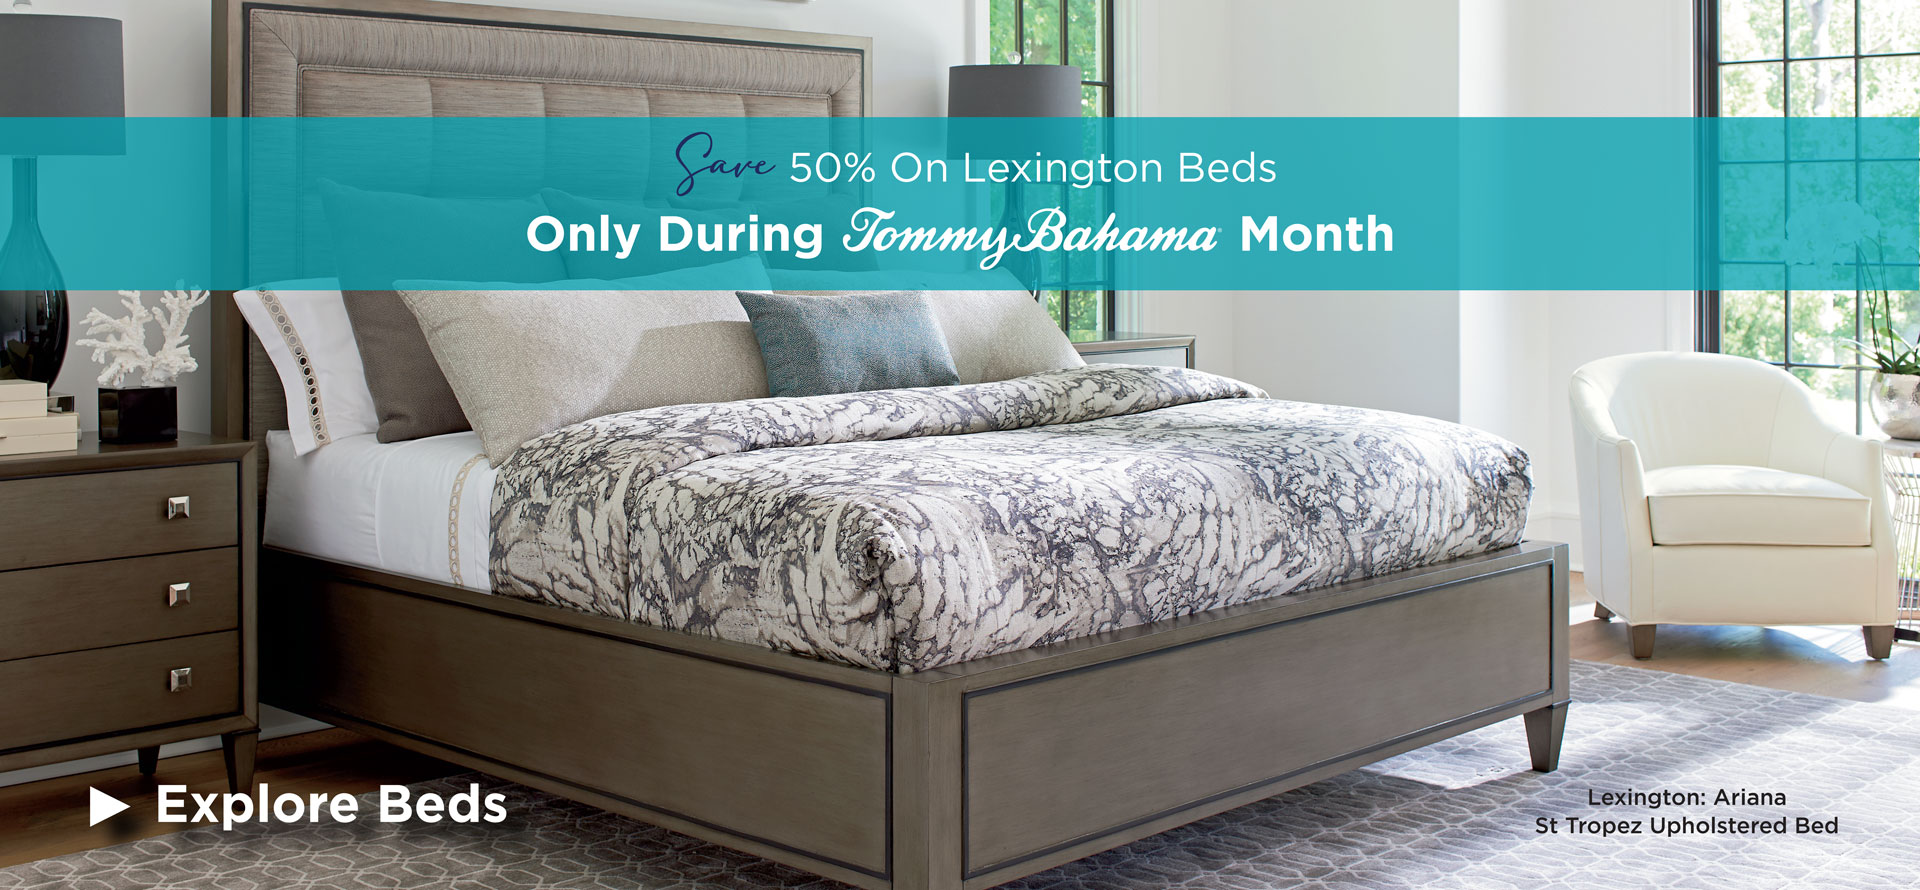 Save 50% on bedrooms during Tommy Bahama Month